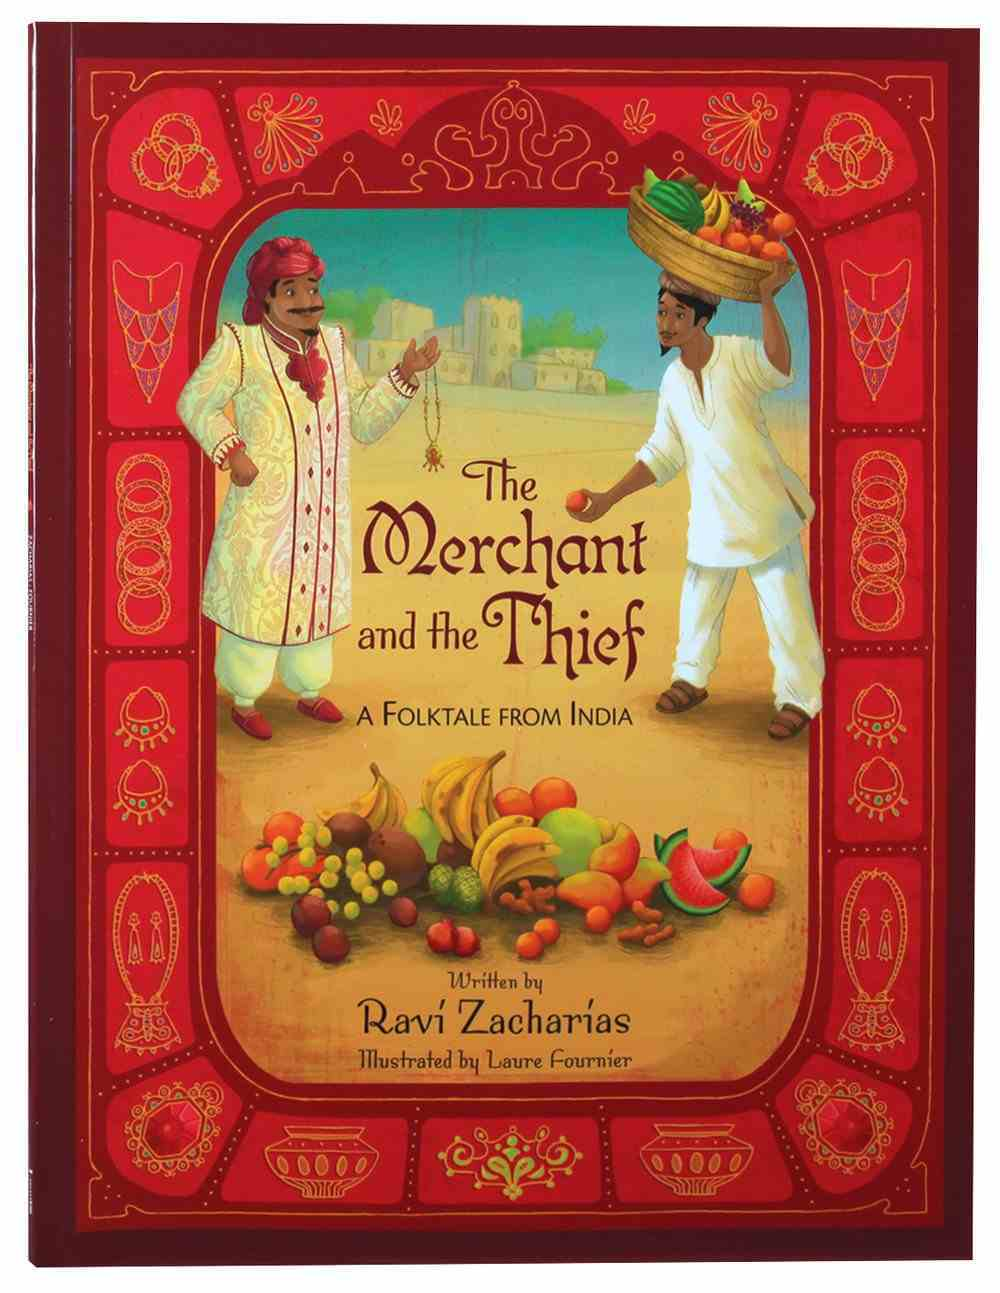 The Merchant and the Thief: A Folktale From India Paperback